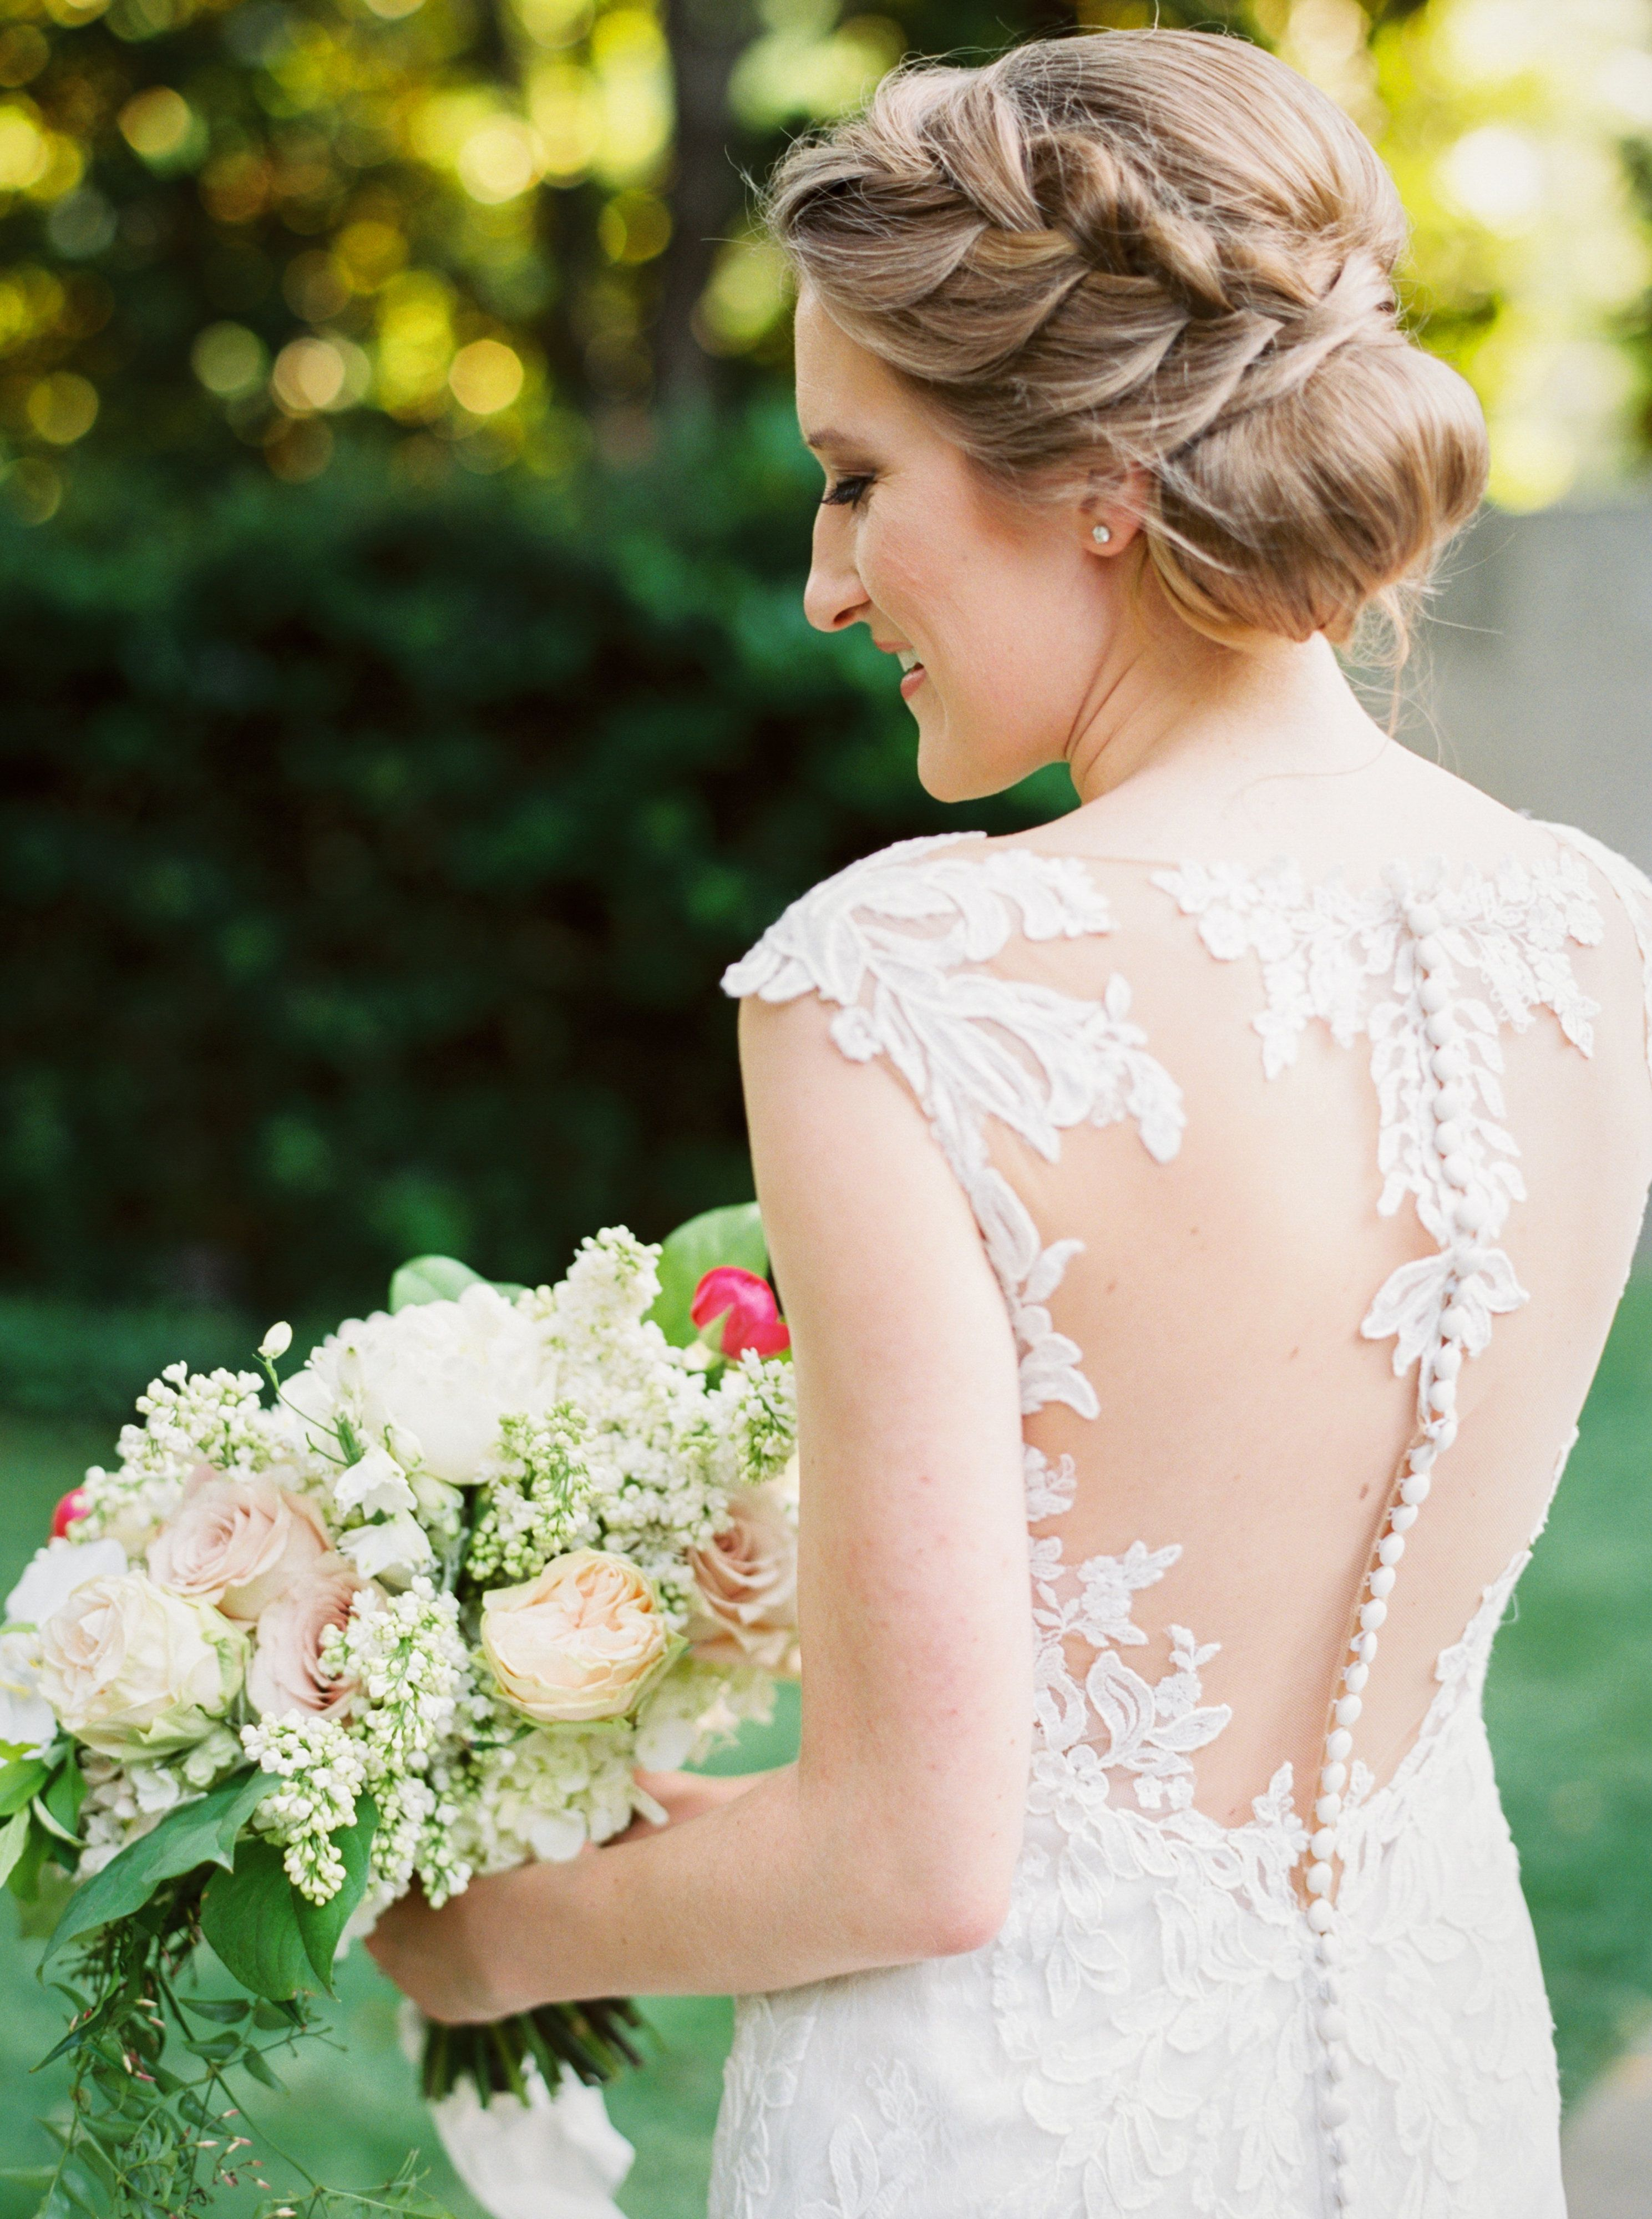 Rebecca's Bridal Portraits Elegant Braid Modern Bride